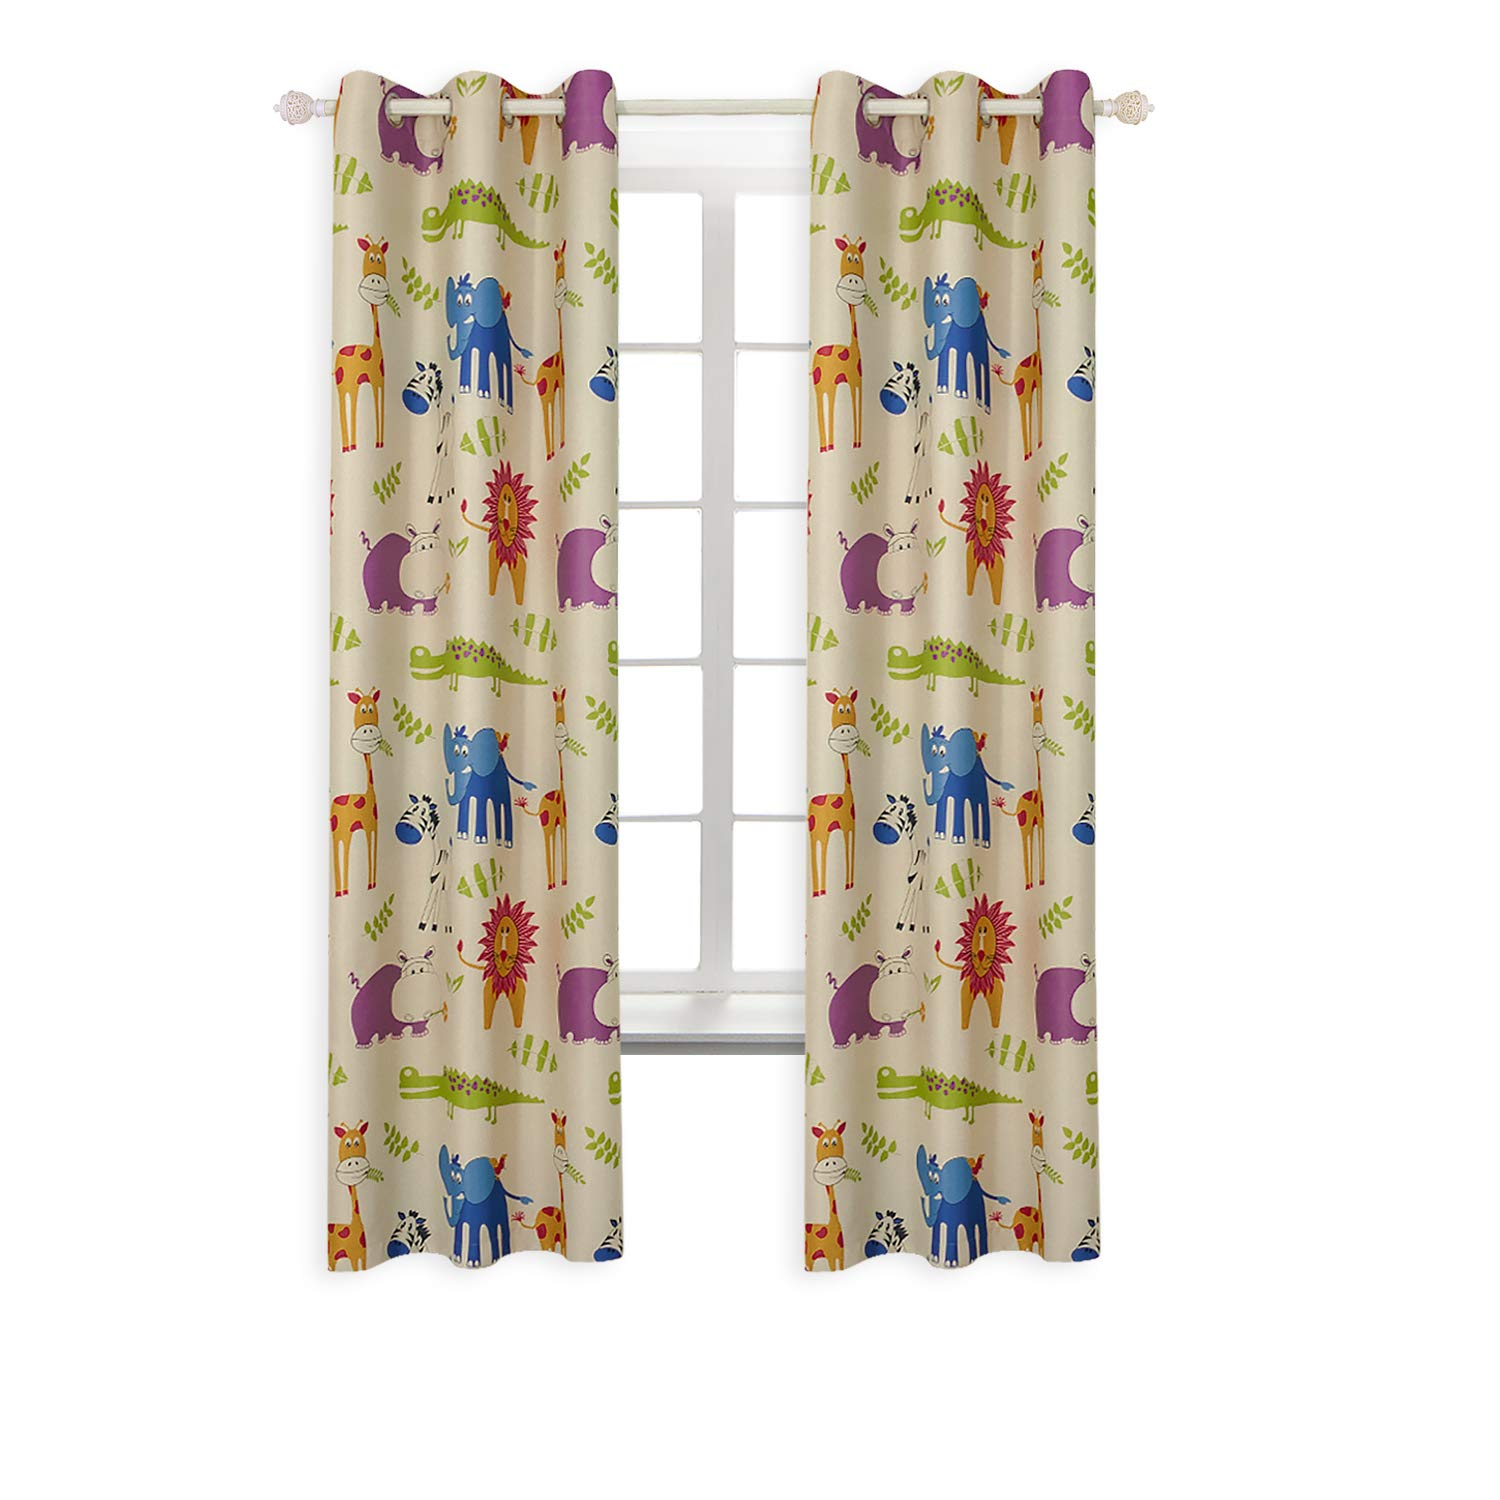 BGment Animal Zoo Kids Curtains for Bedroom Darkening, Classical Grommets, 2Panels (42'' Wx84 L, Curtains)